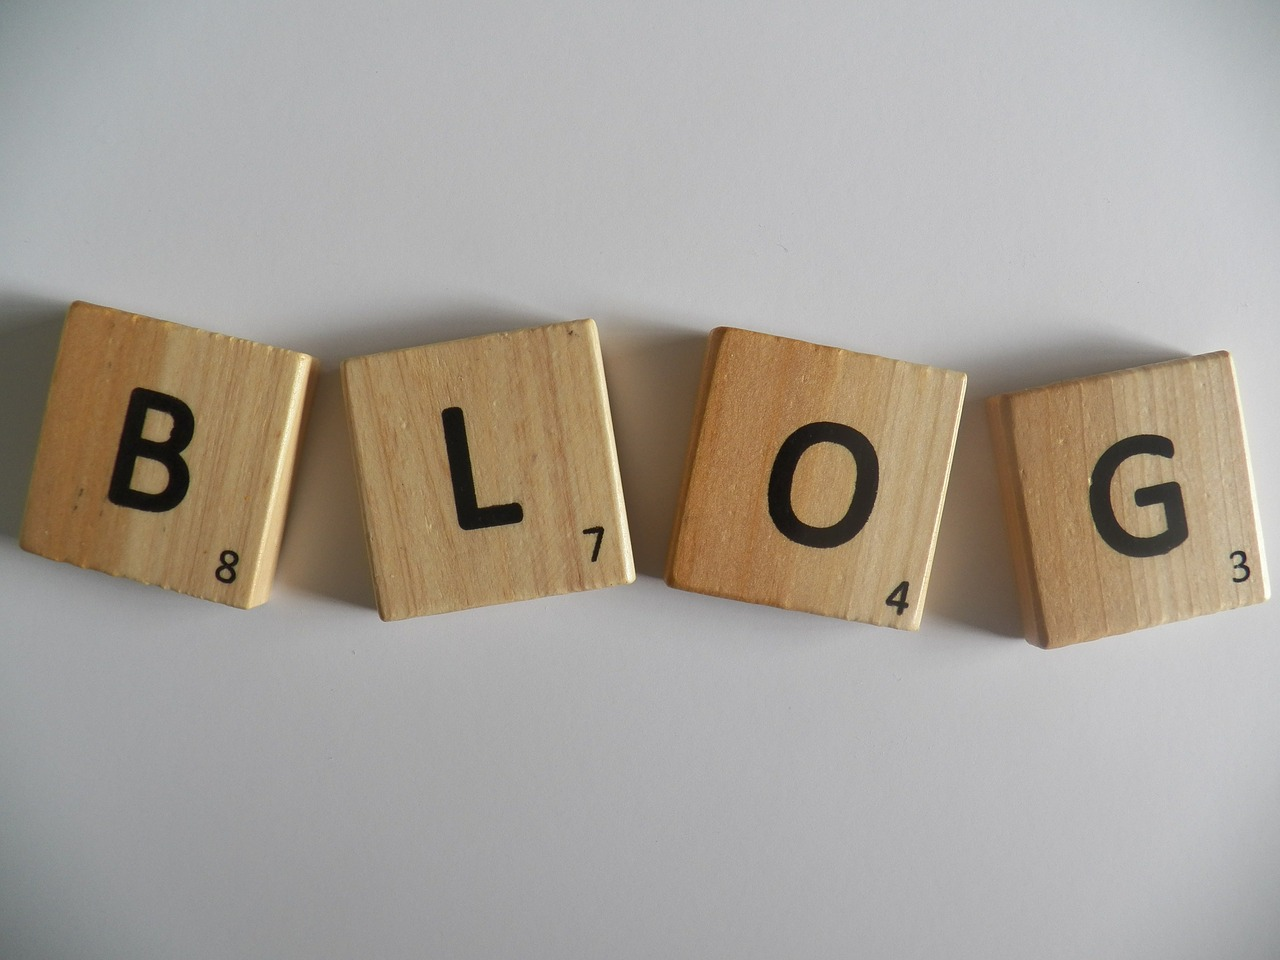 APPortunity Knocks: Should it be the Class Blog or the Blog Class? (Part I)